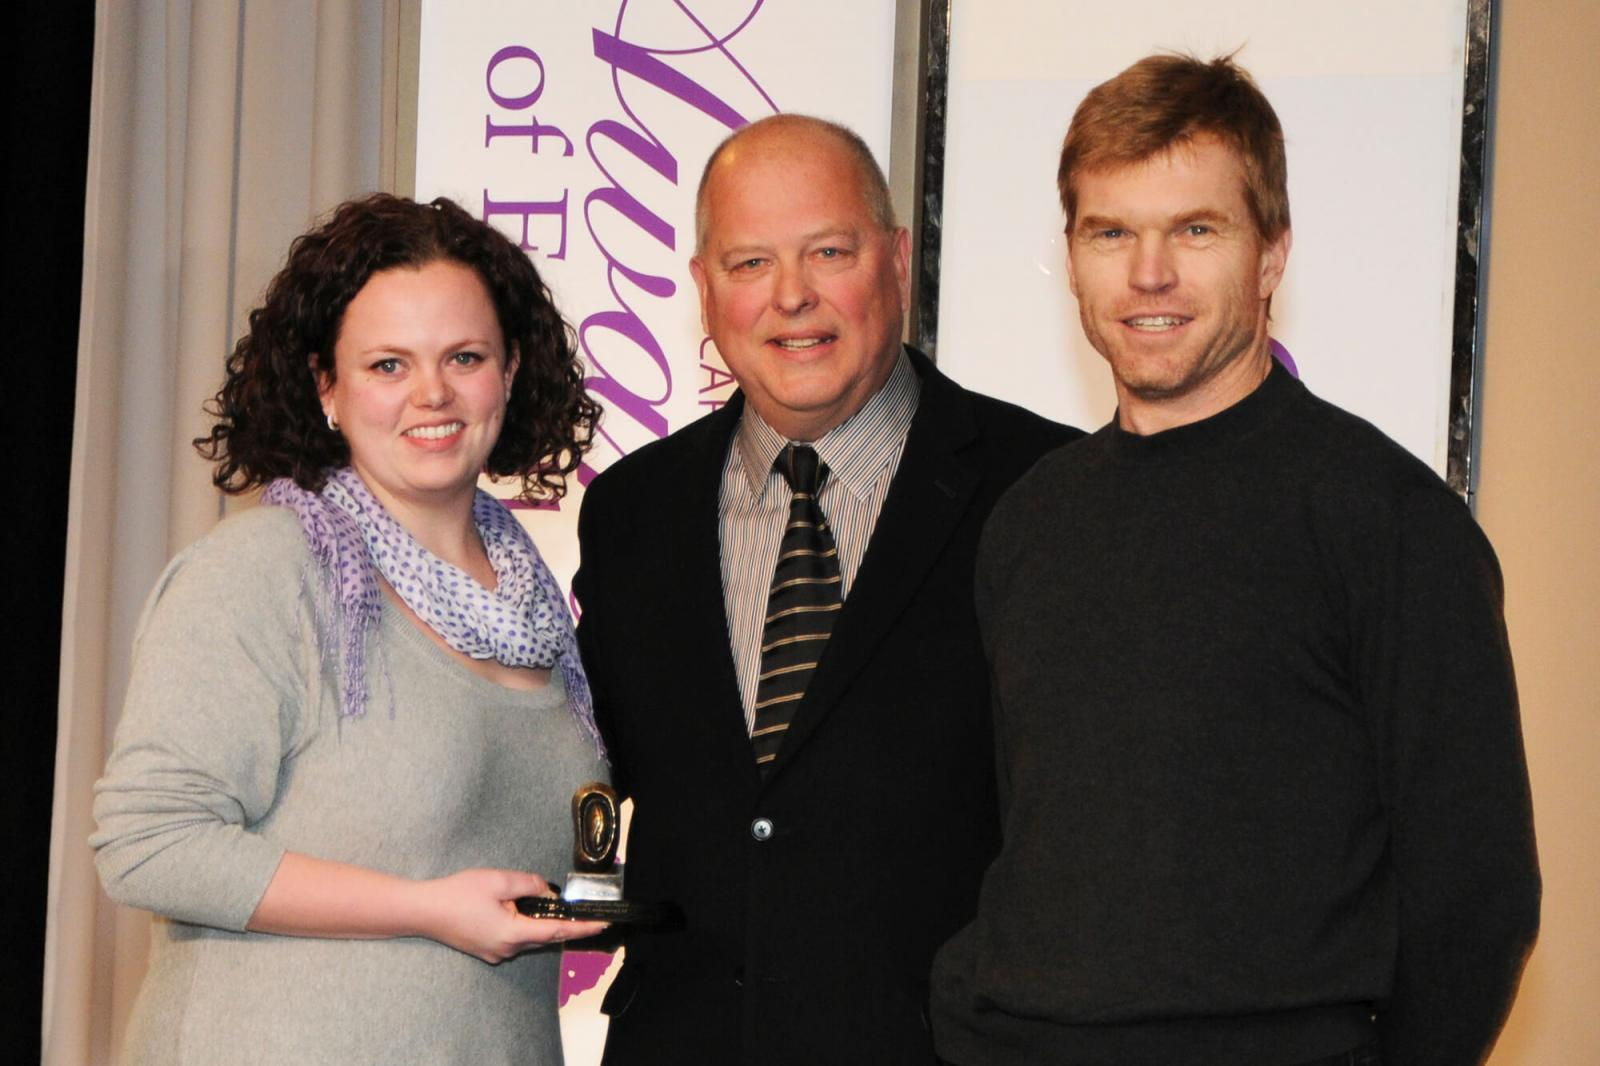 Captions: Karl Stensson (centre) presented the Dunington-Grubb Award to Oriole Landscaping's Sabrina Goettler and Peter Guinane.